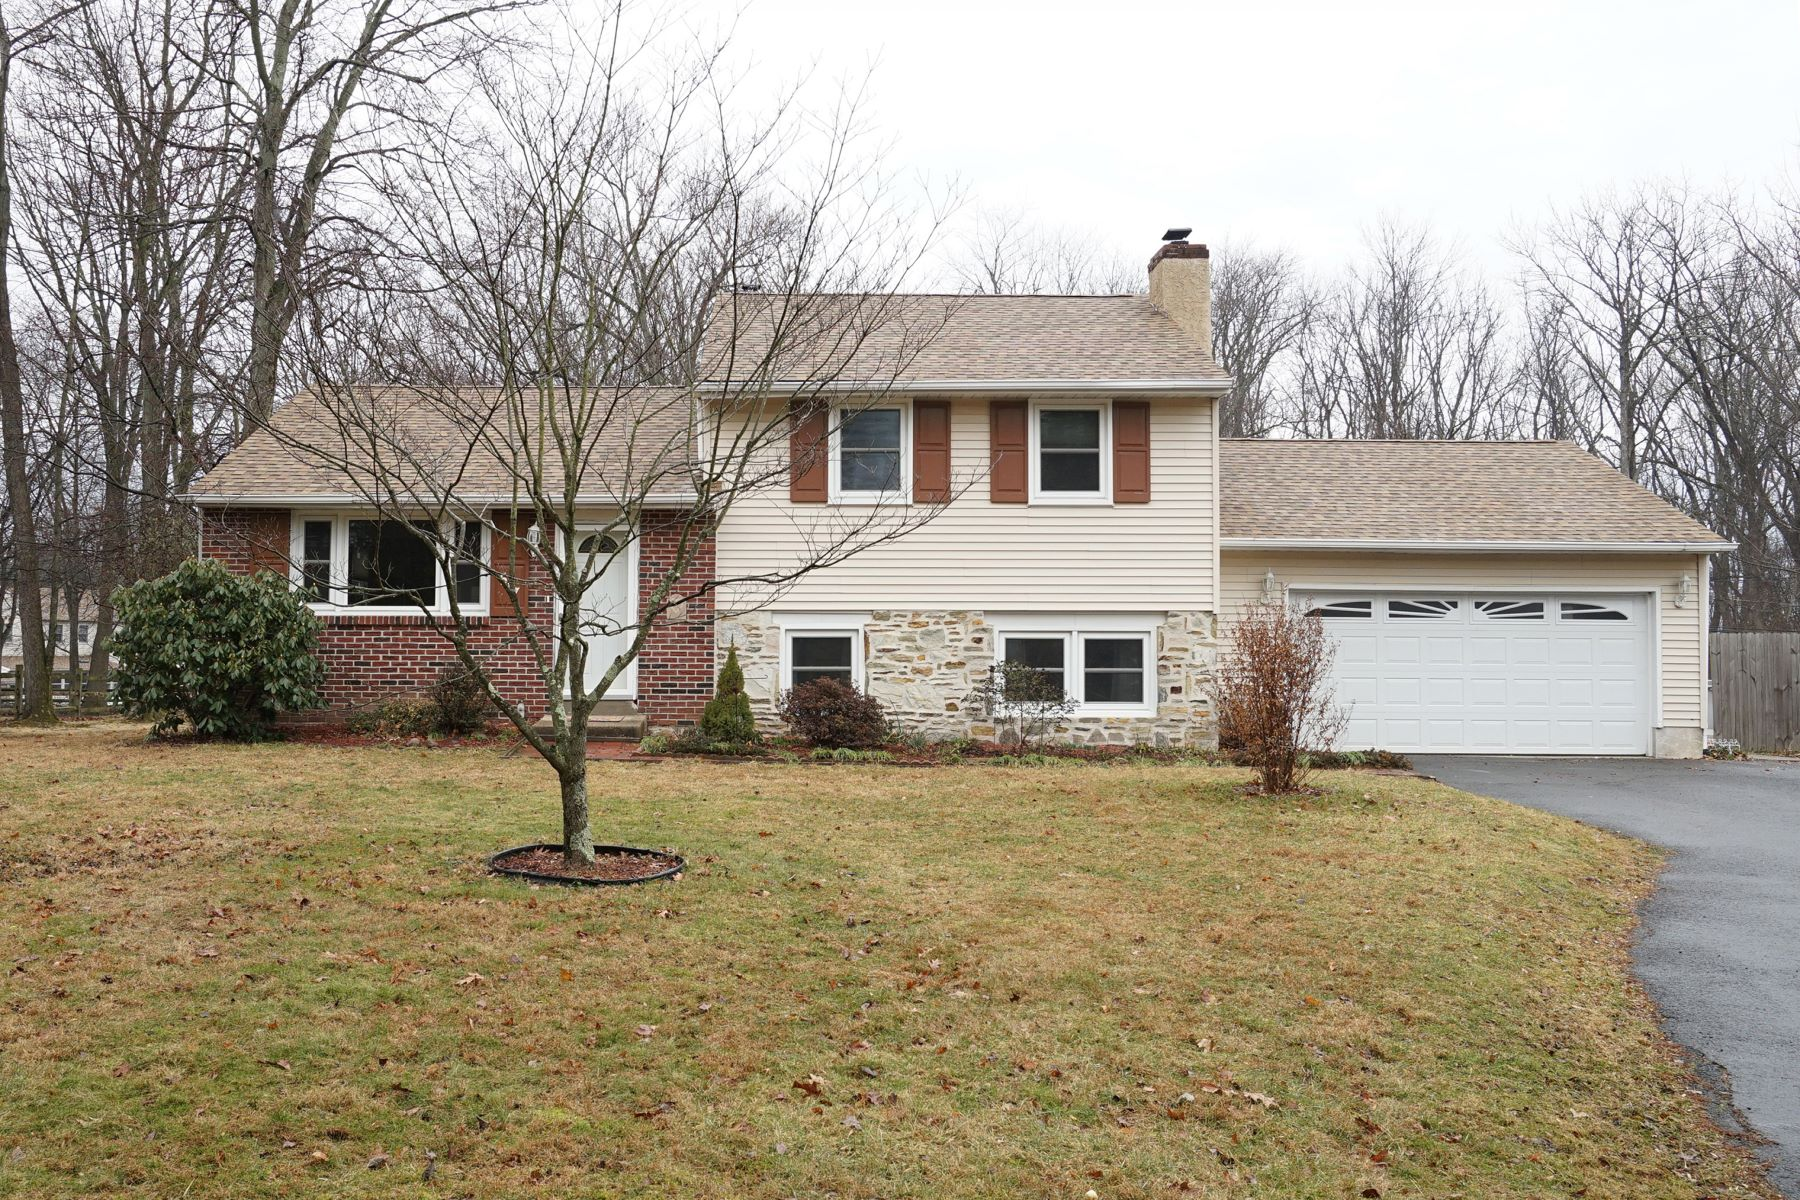 Single Family Homes for Sale at 517 LEXINGTON AVE Chalfont, Pennsylvania 18914 United States